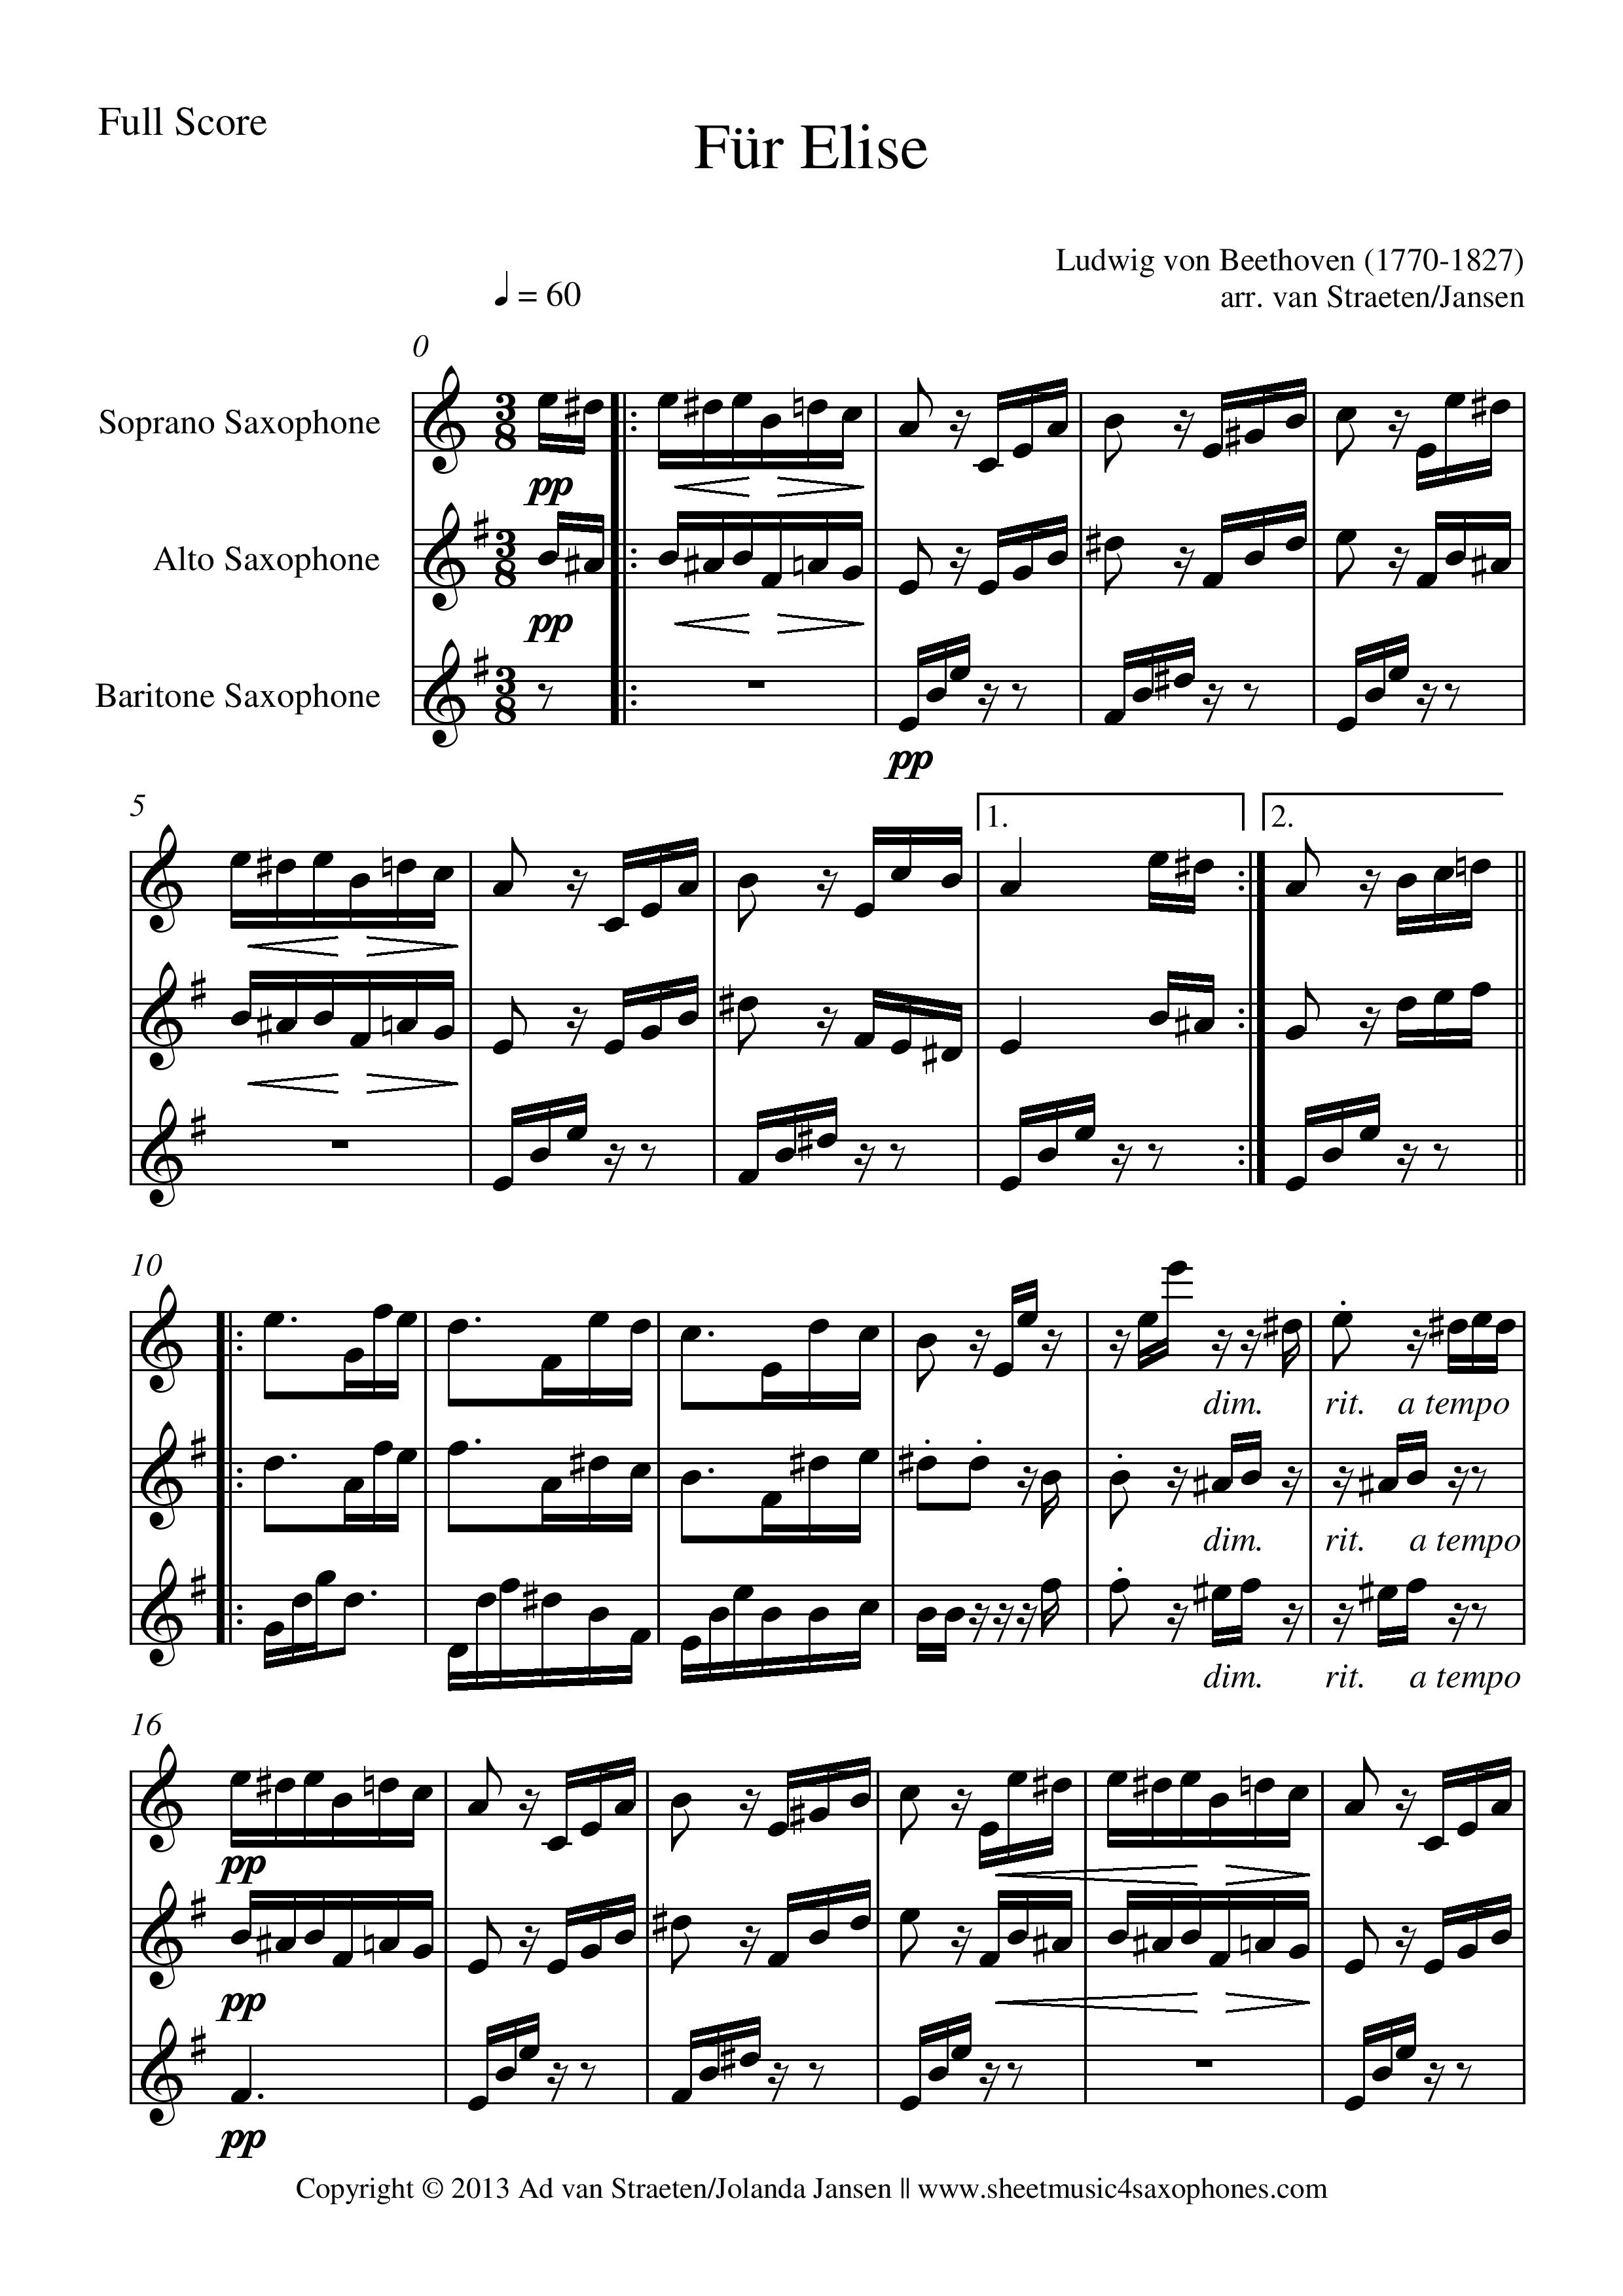 Fur Elise Sheet Music With Letters